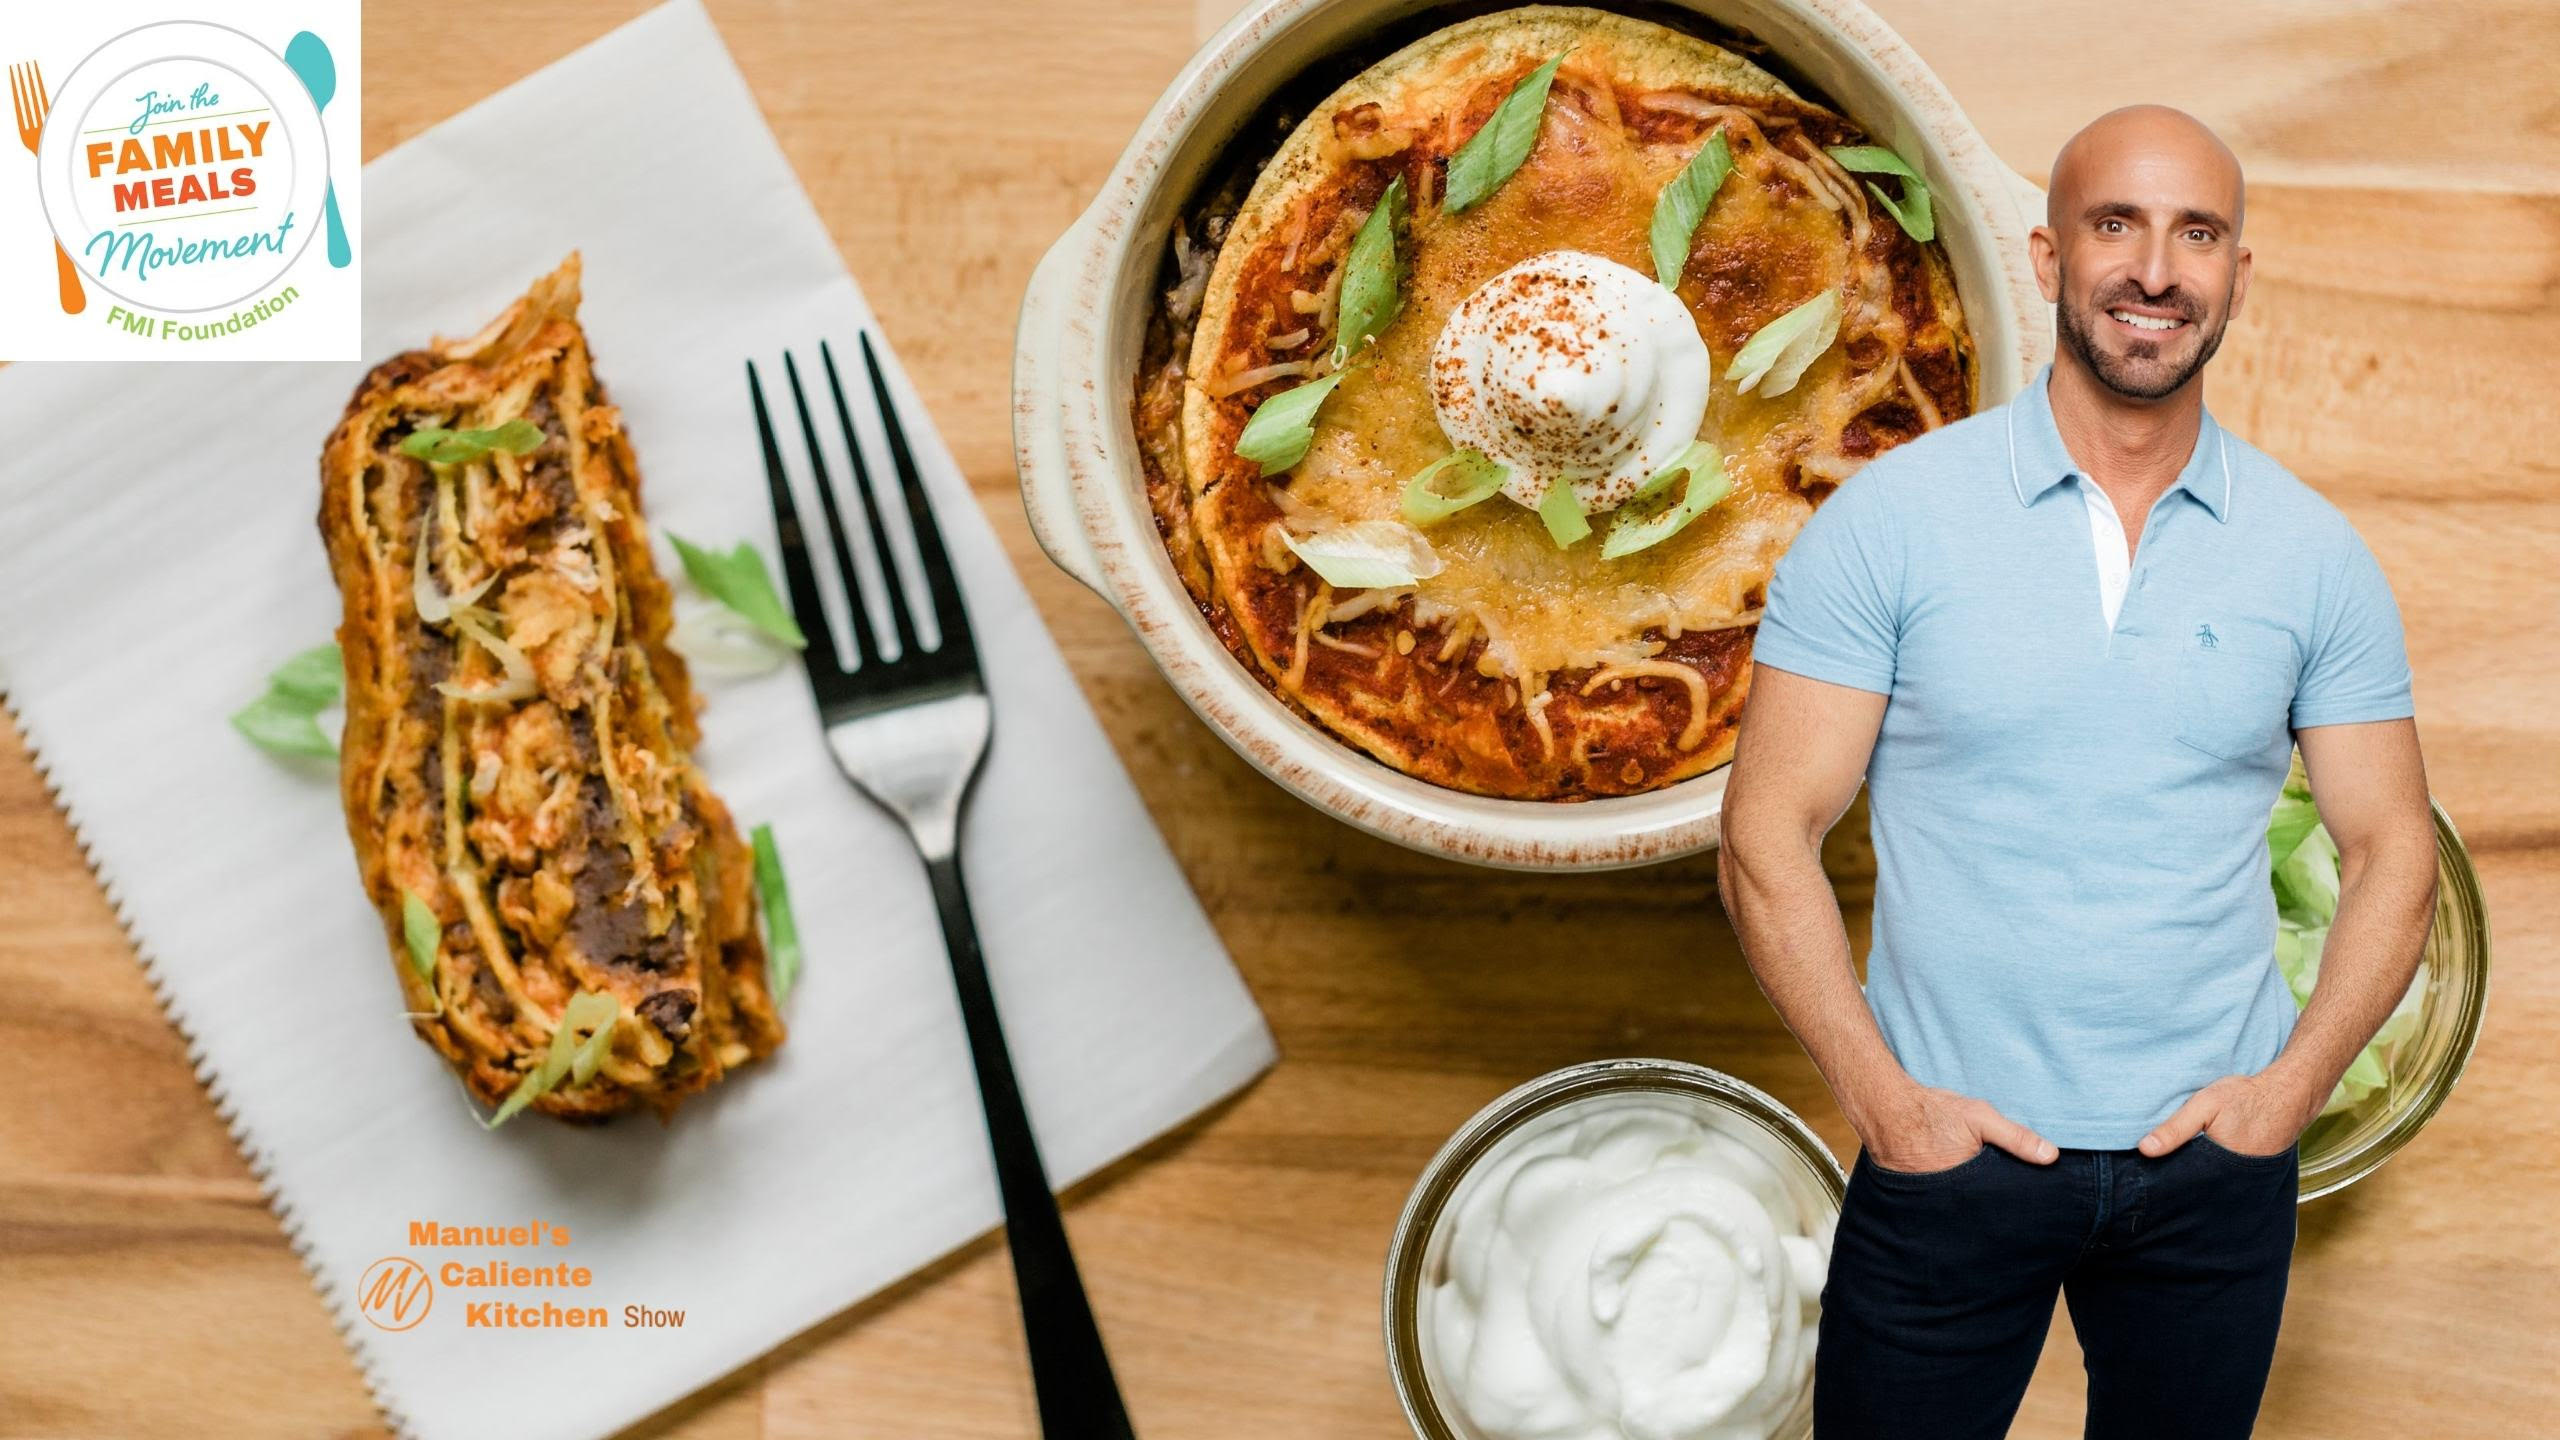 How to Make Your Own Enchilada Mini Casserole